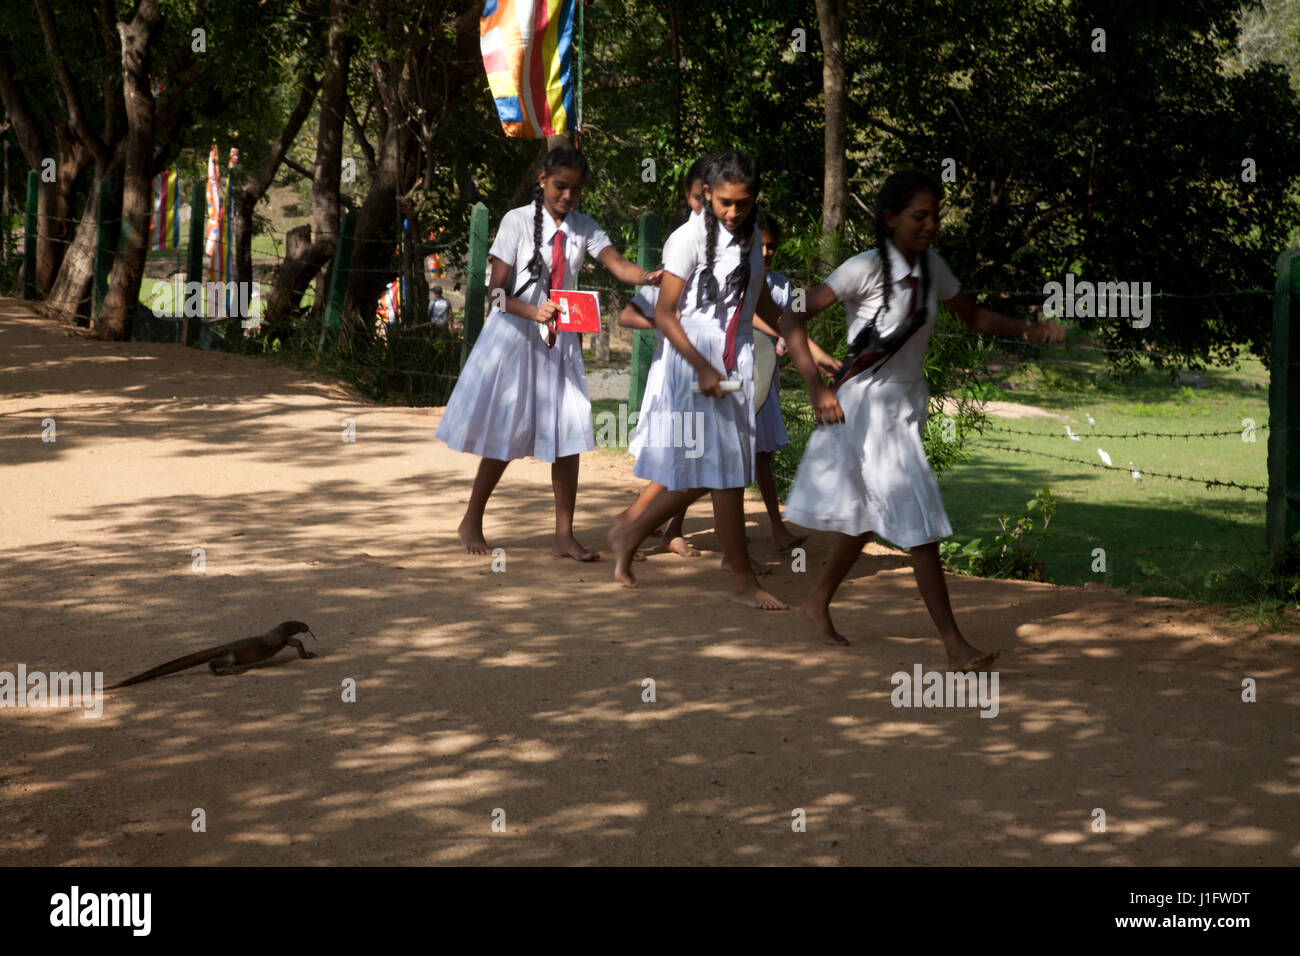 polonnaruwa north central province sri lanka - Stock Image